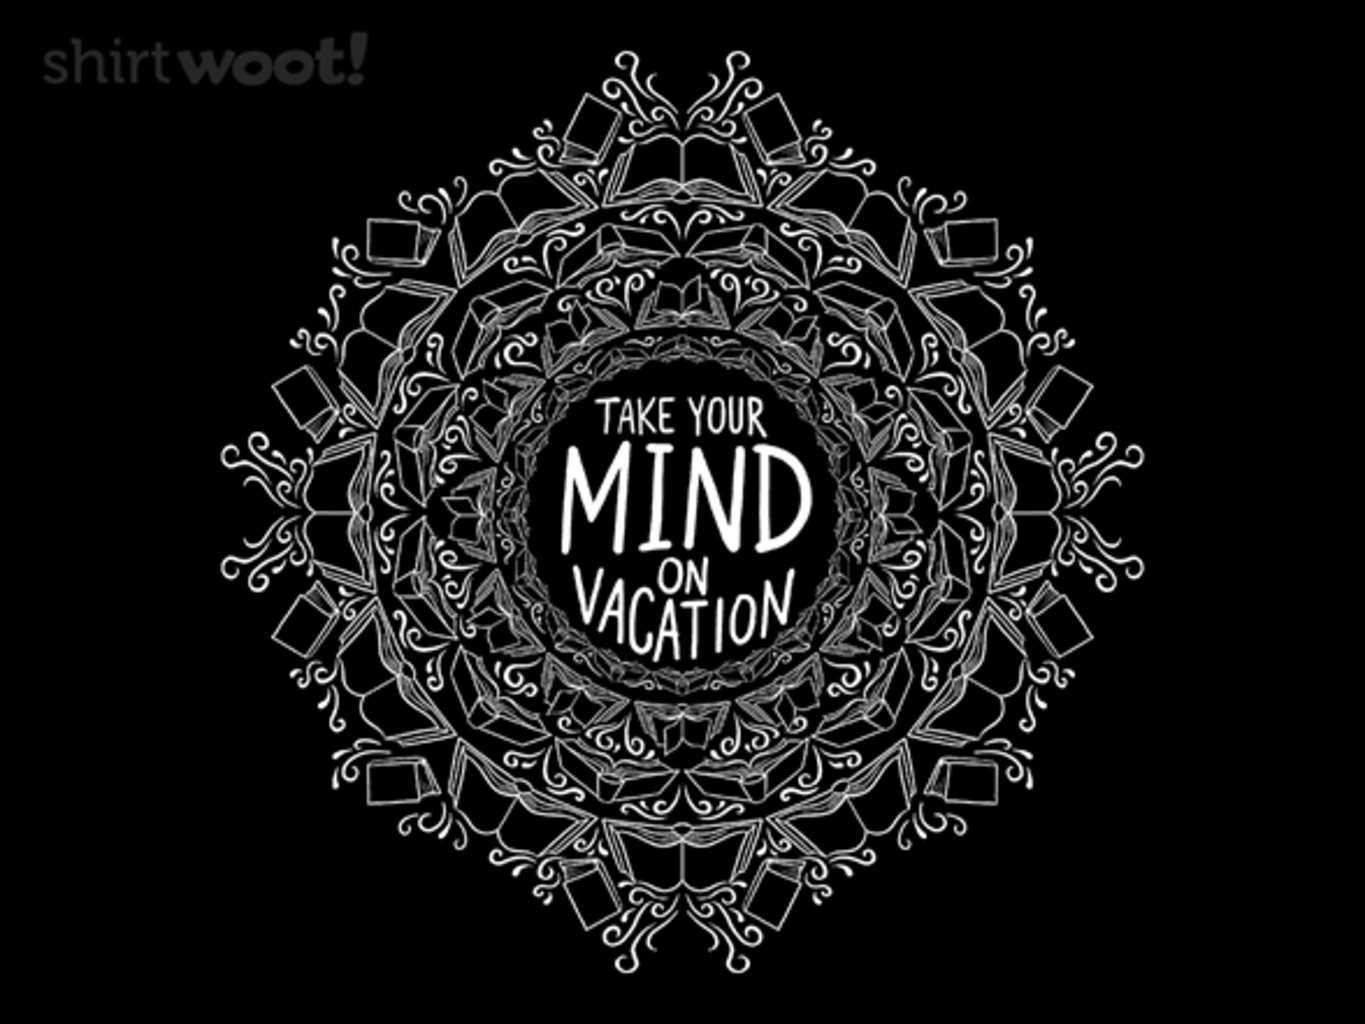 Woot!: Take Your Mind on Vacation